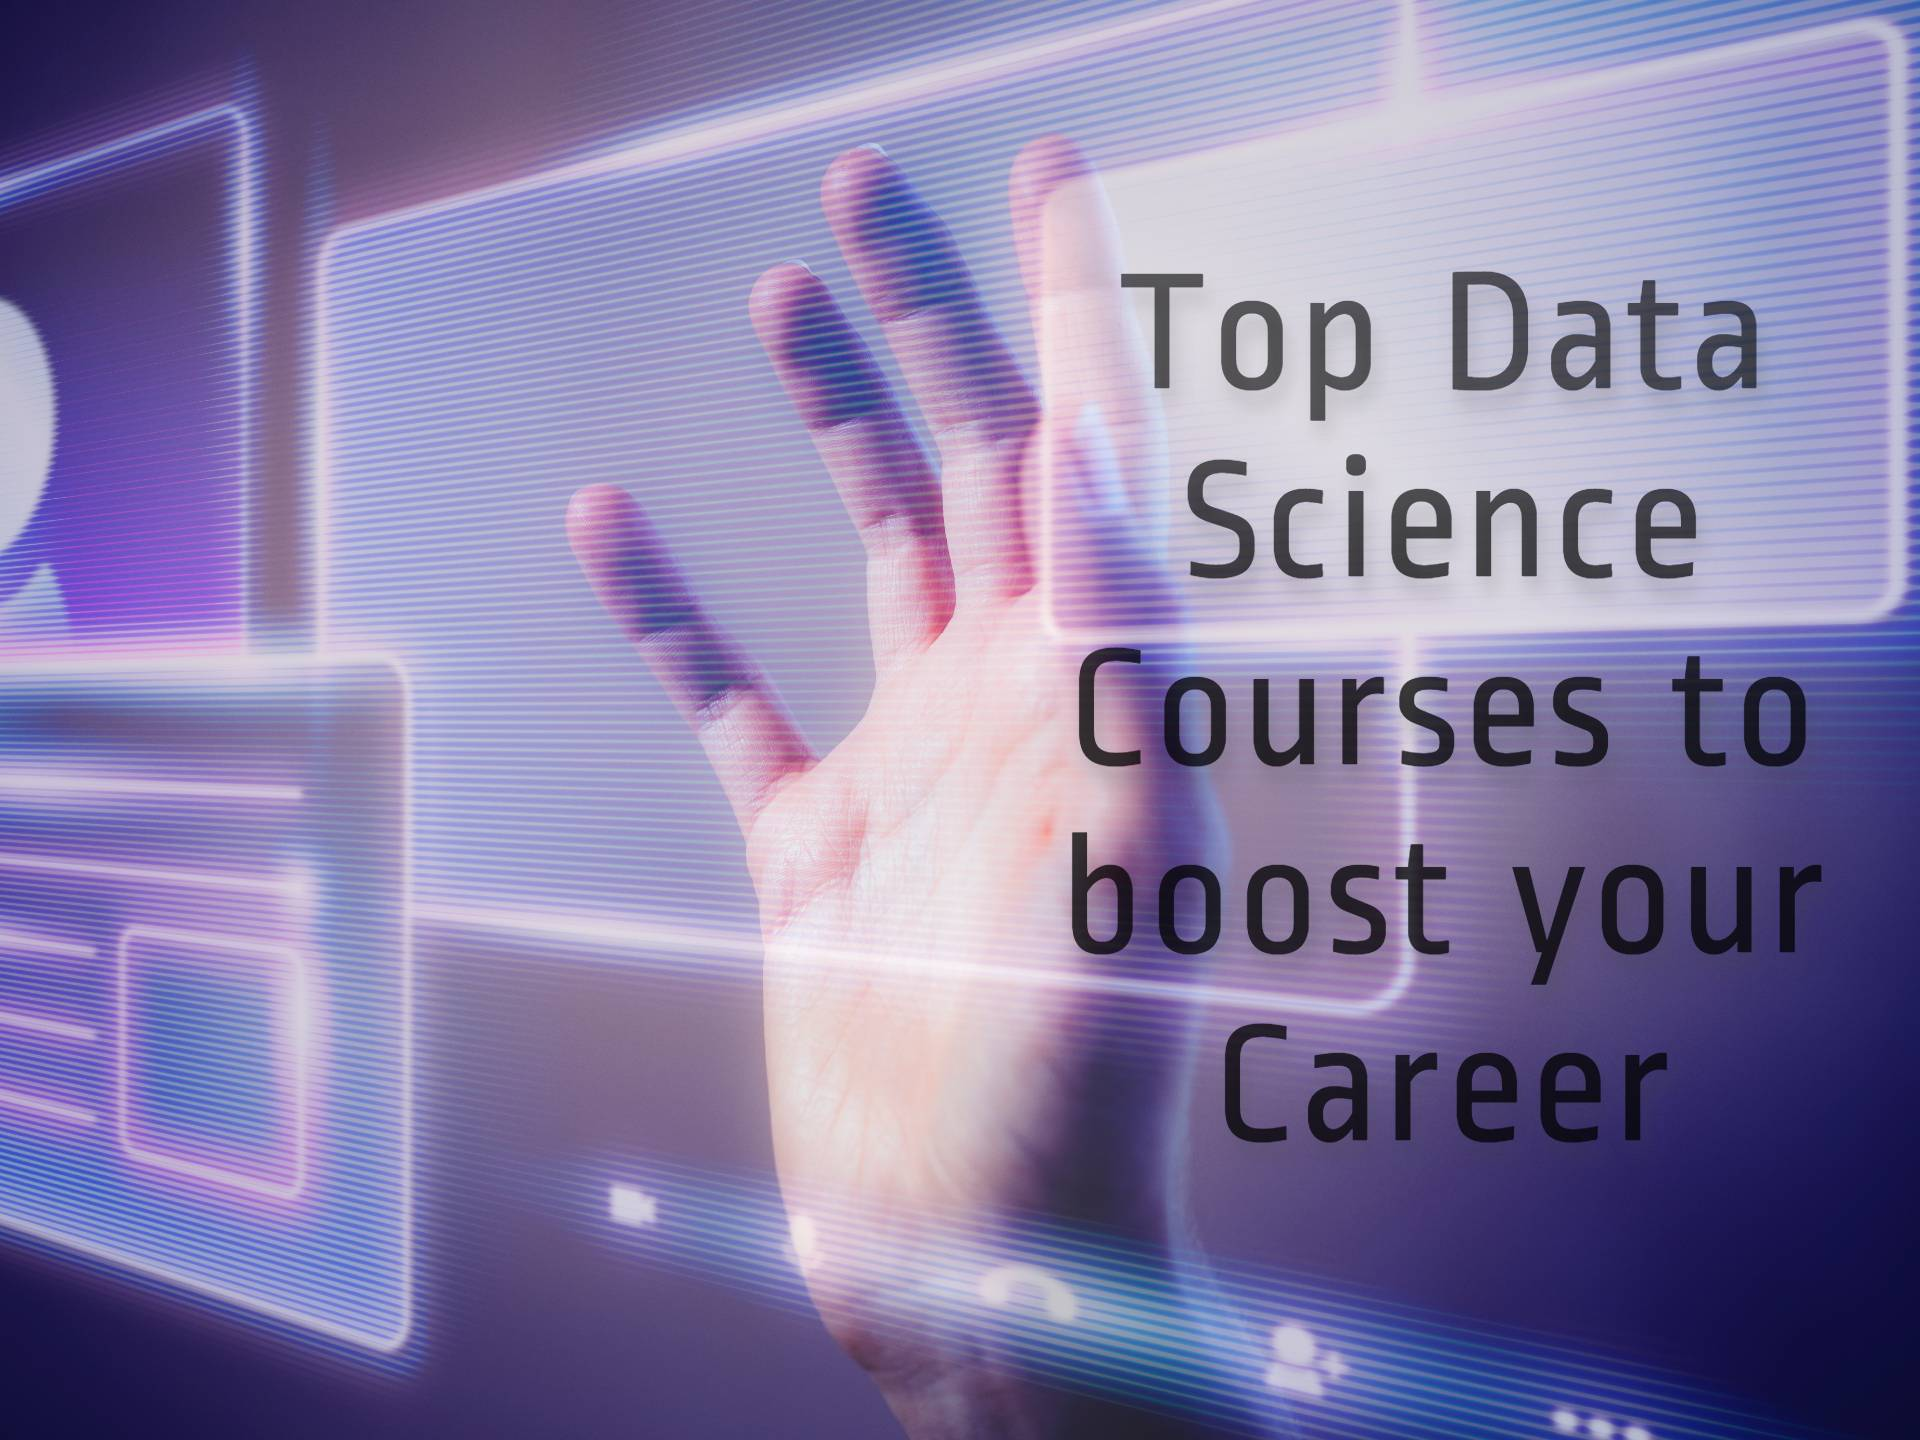 Top Data Science Courses to boost your Career in 2021